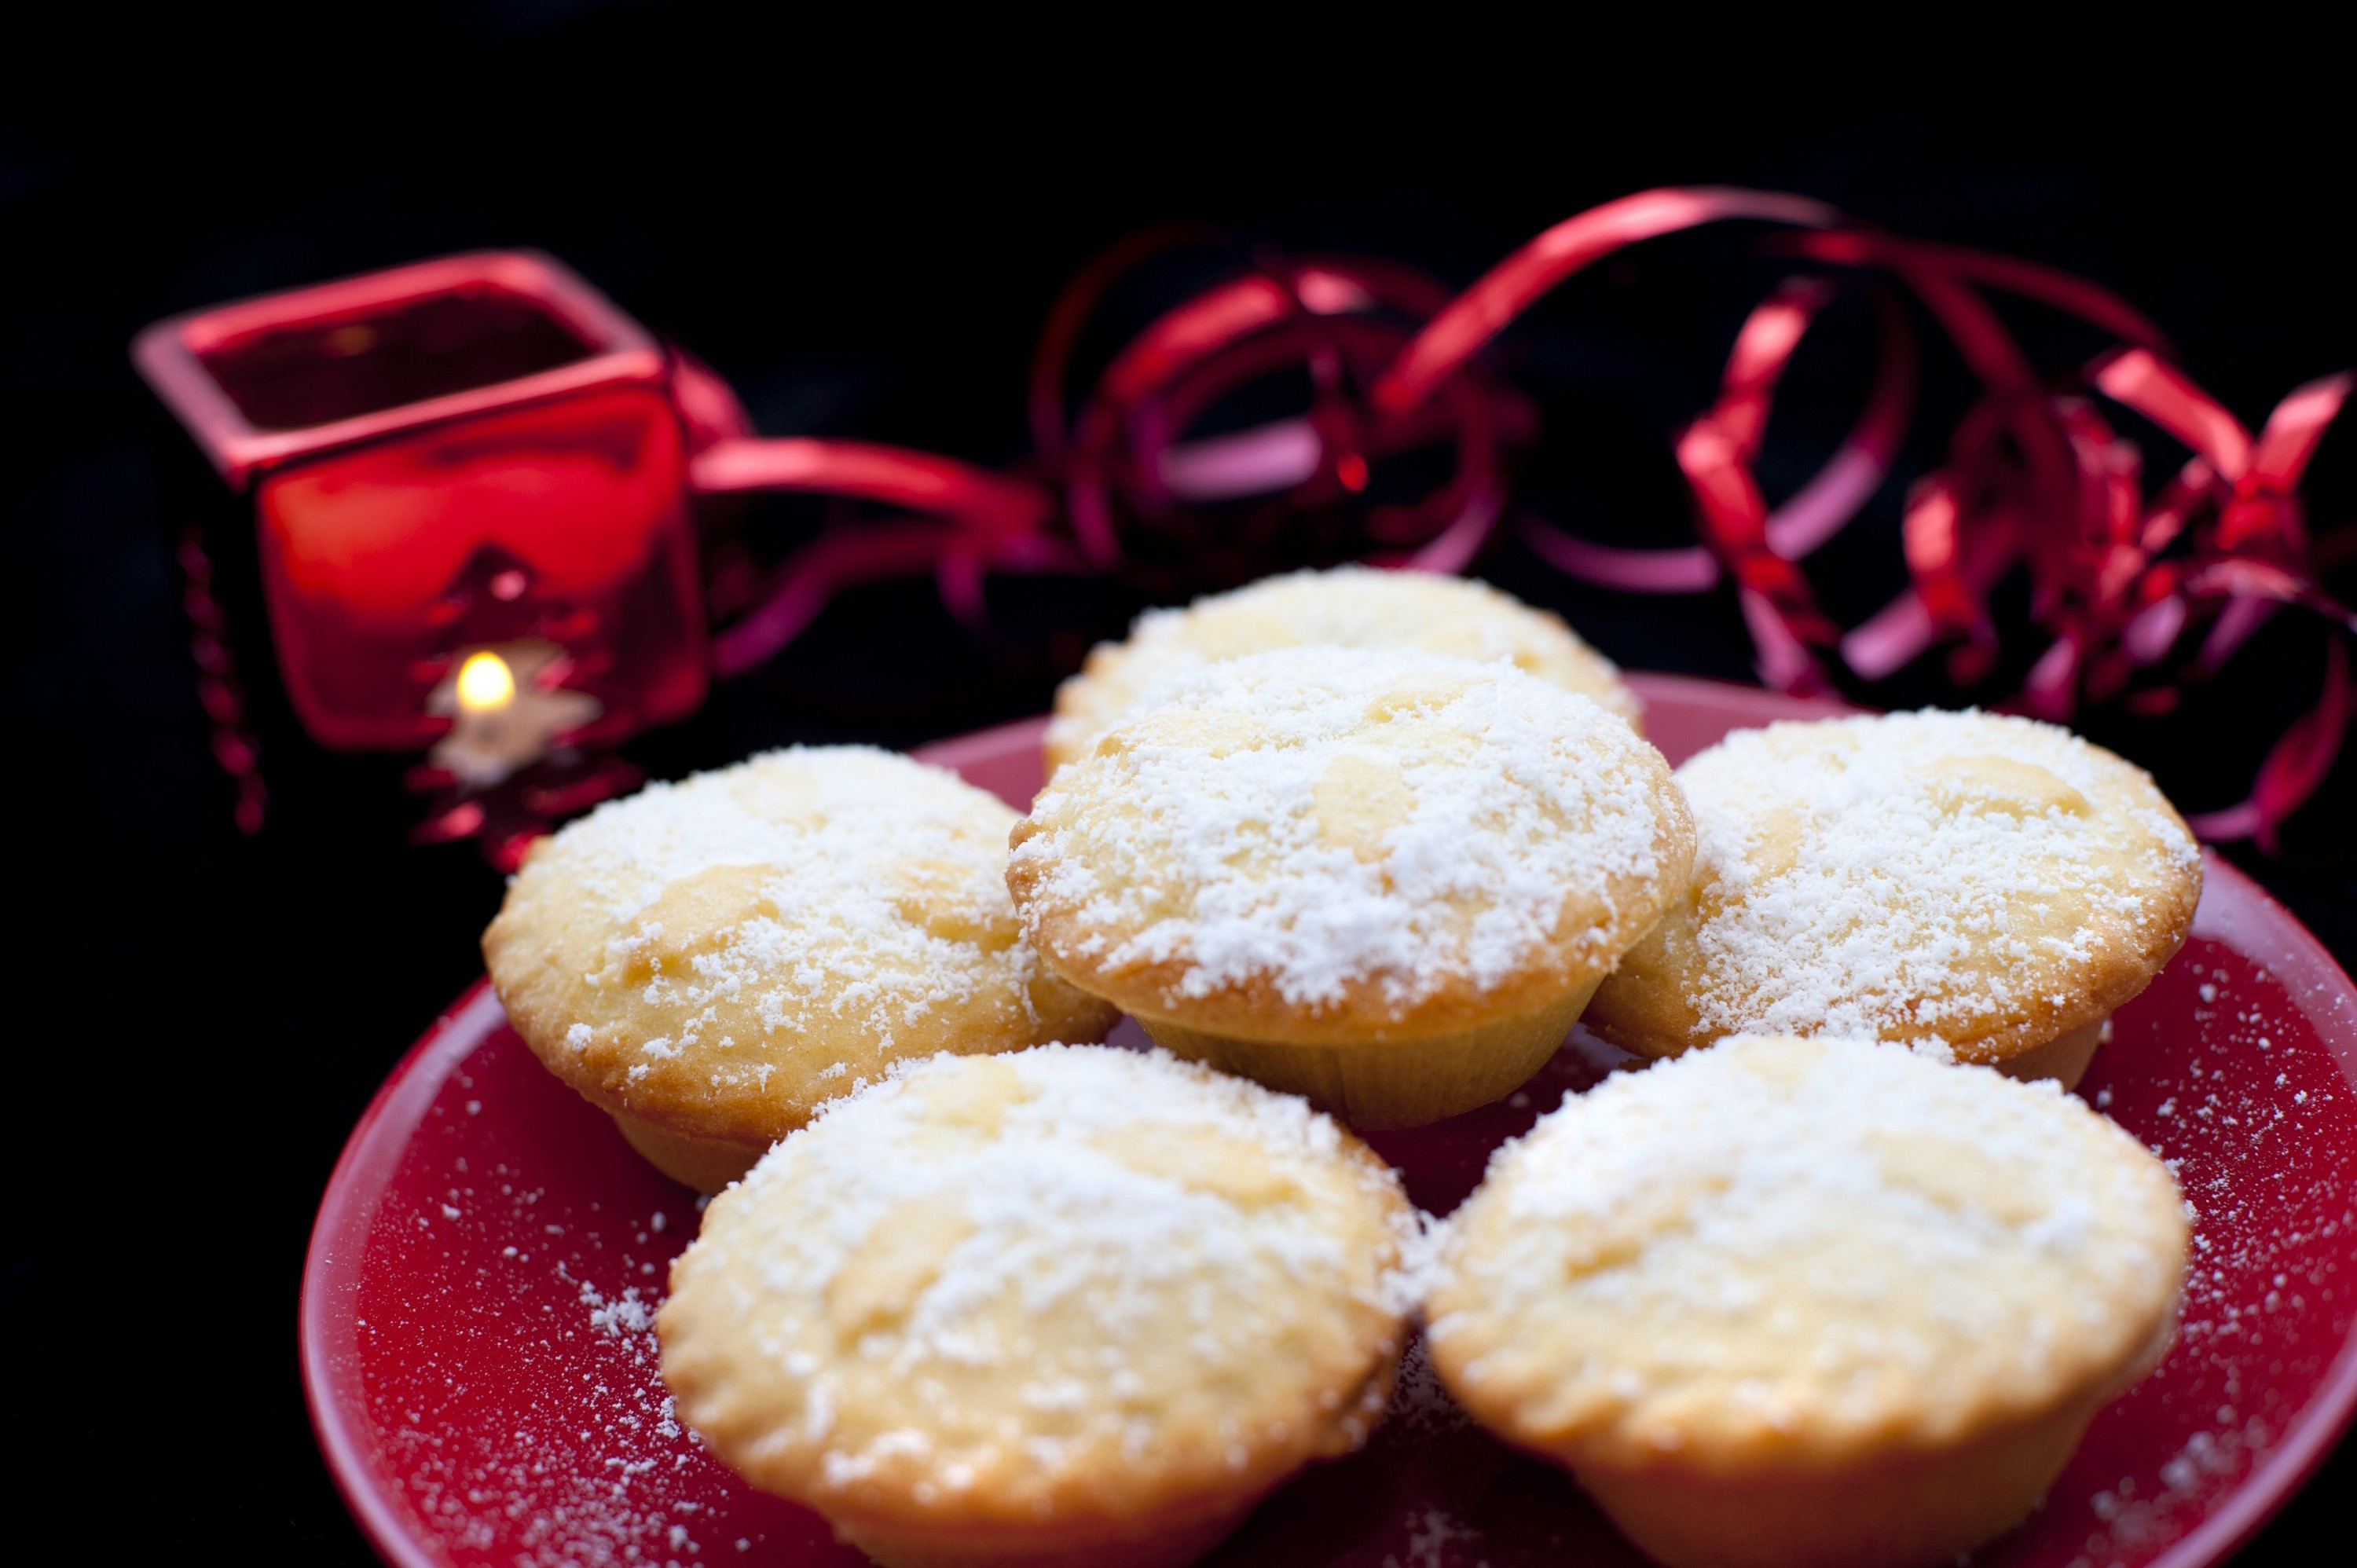 Plate of Christmas mince pies with golden crusts and fruity filling sprinkled with sugar and served & Photo of Plate of Christmas mince pies | Free christmas images